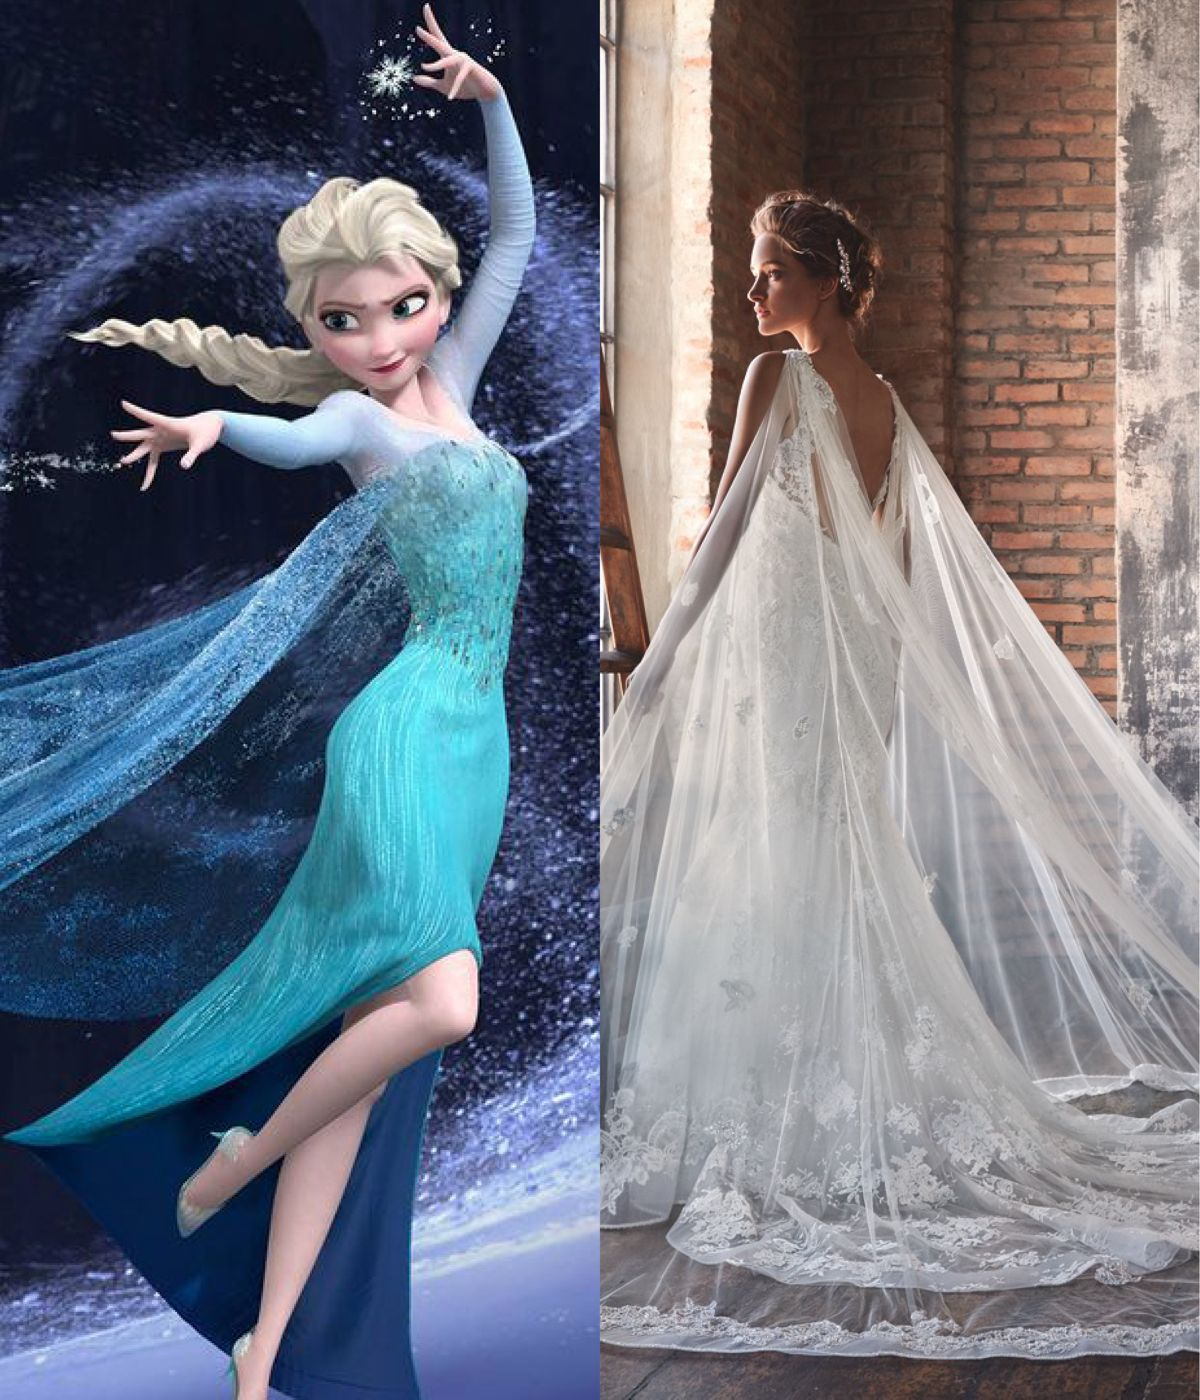 Disney Wedding Dresses 2019: Modern Wedding Dresses For Every Disney Princess In 2019